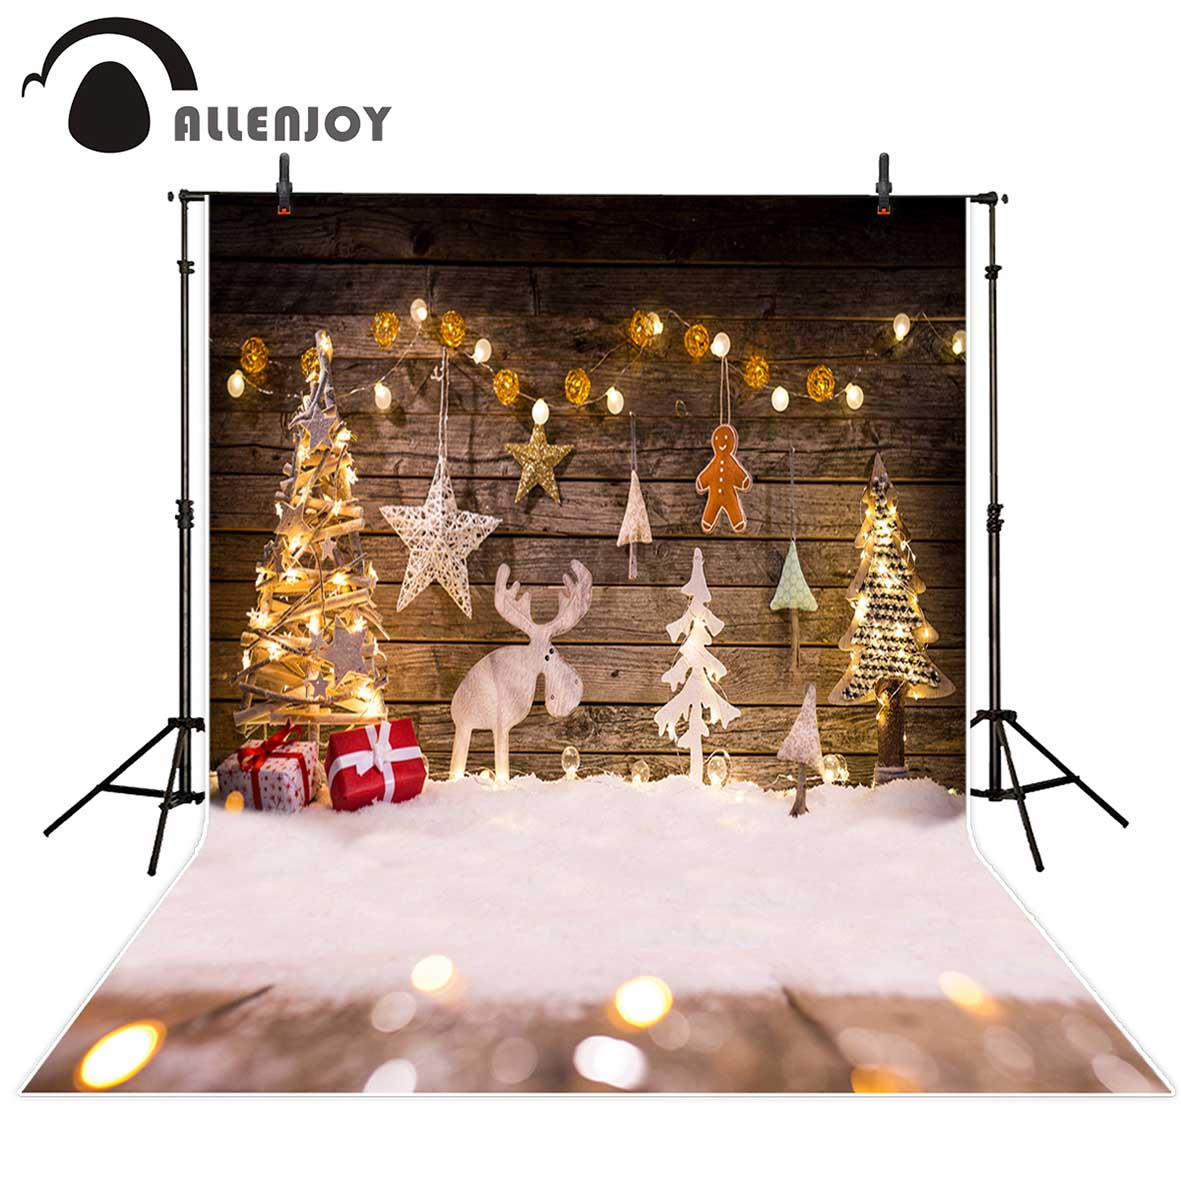 Allenjoy background for photo Christmas shiny tree snow kids wood wall backdrop photocall photobooth photo studio professional allenjoy backgrounds for photo studio white board children light illusory children new background photocall customize backdrop